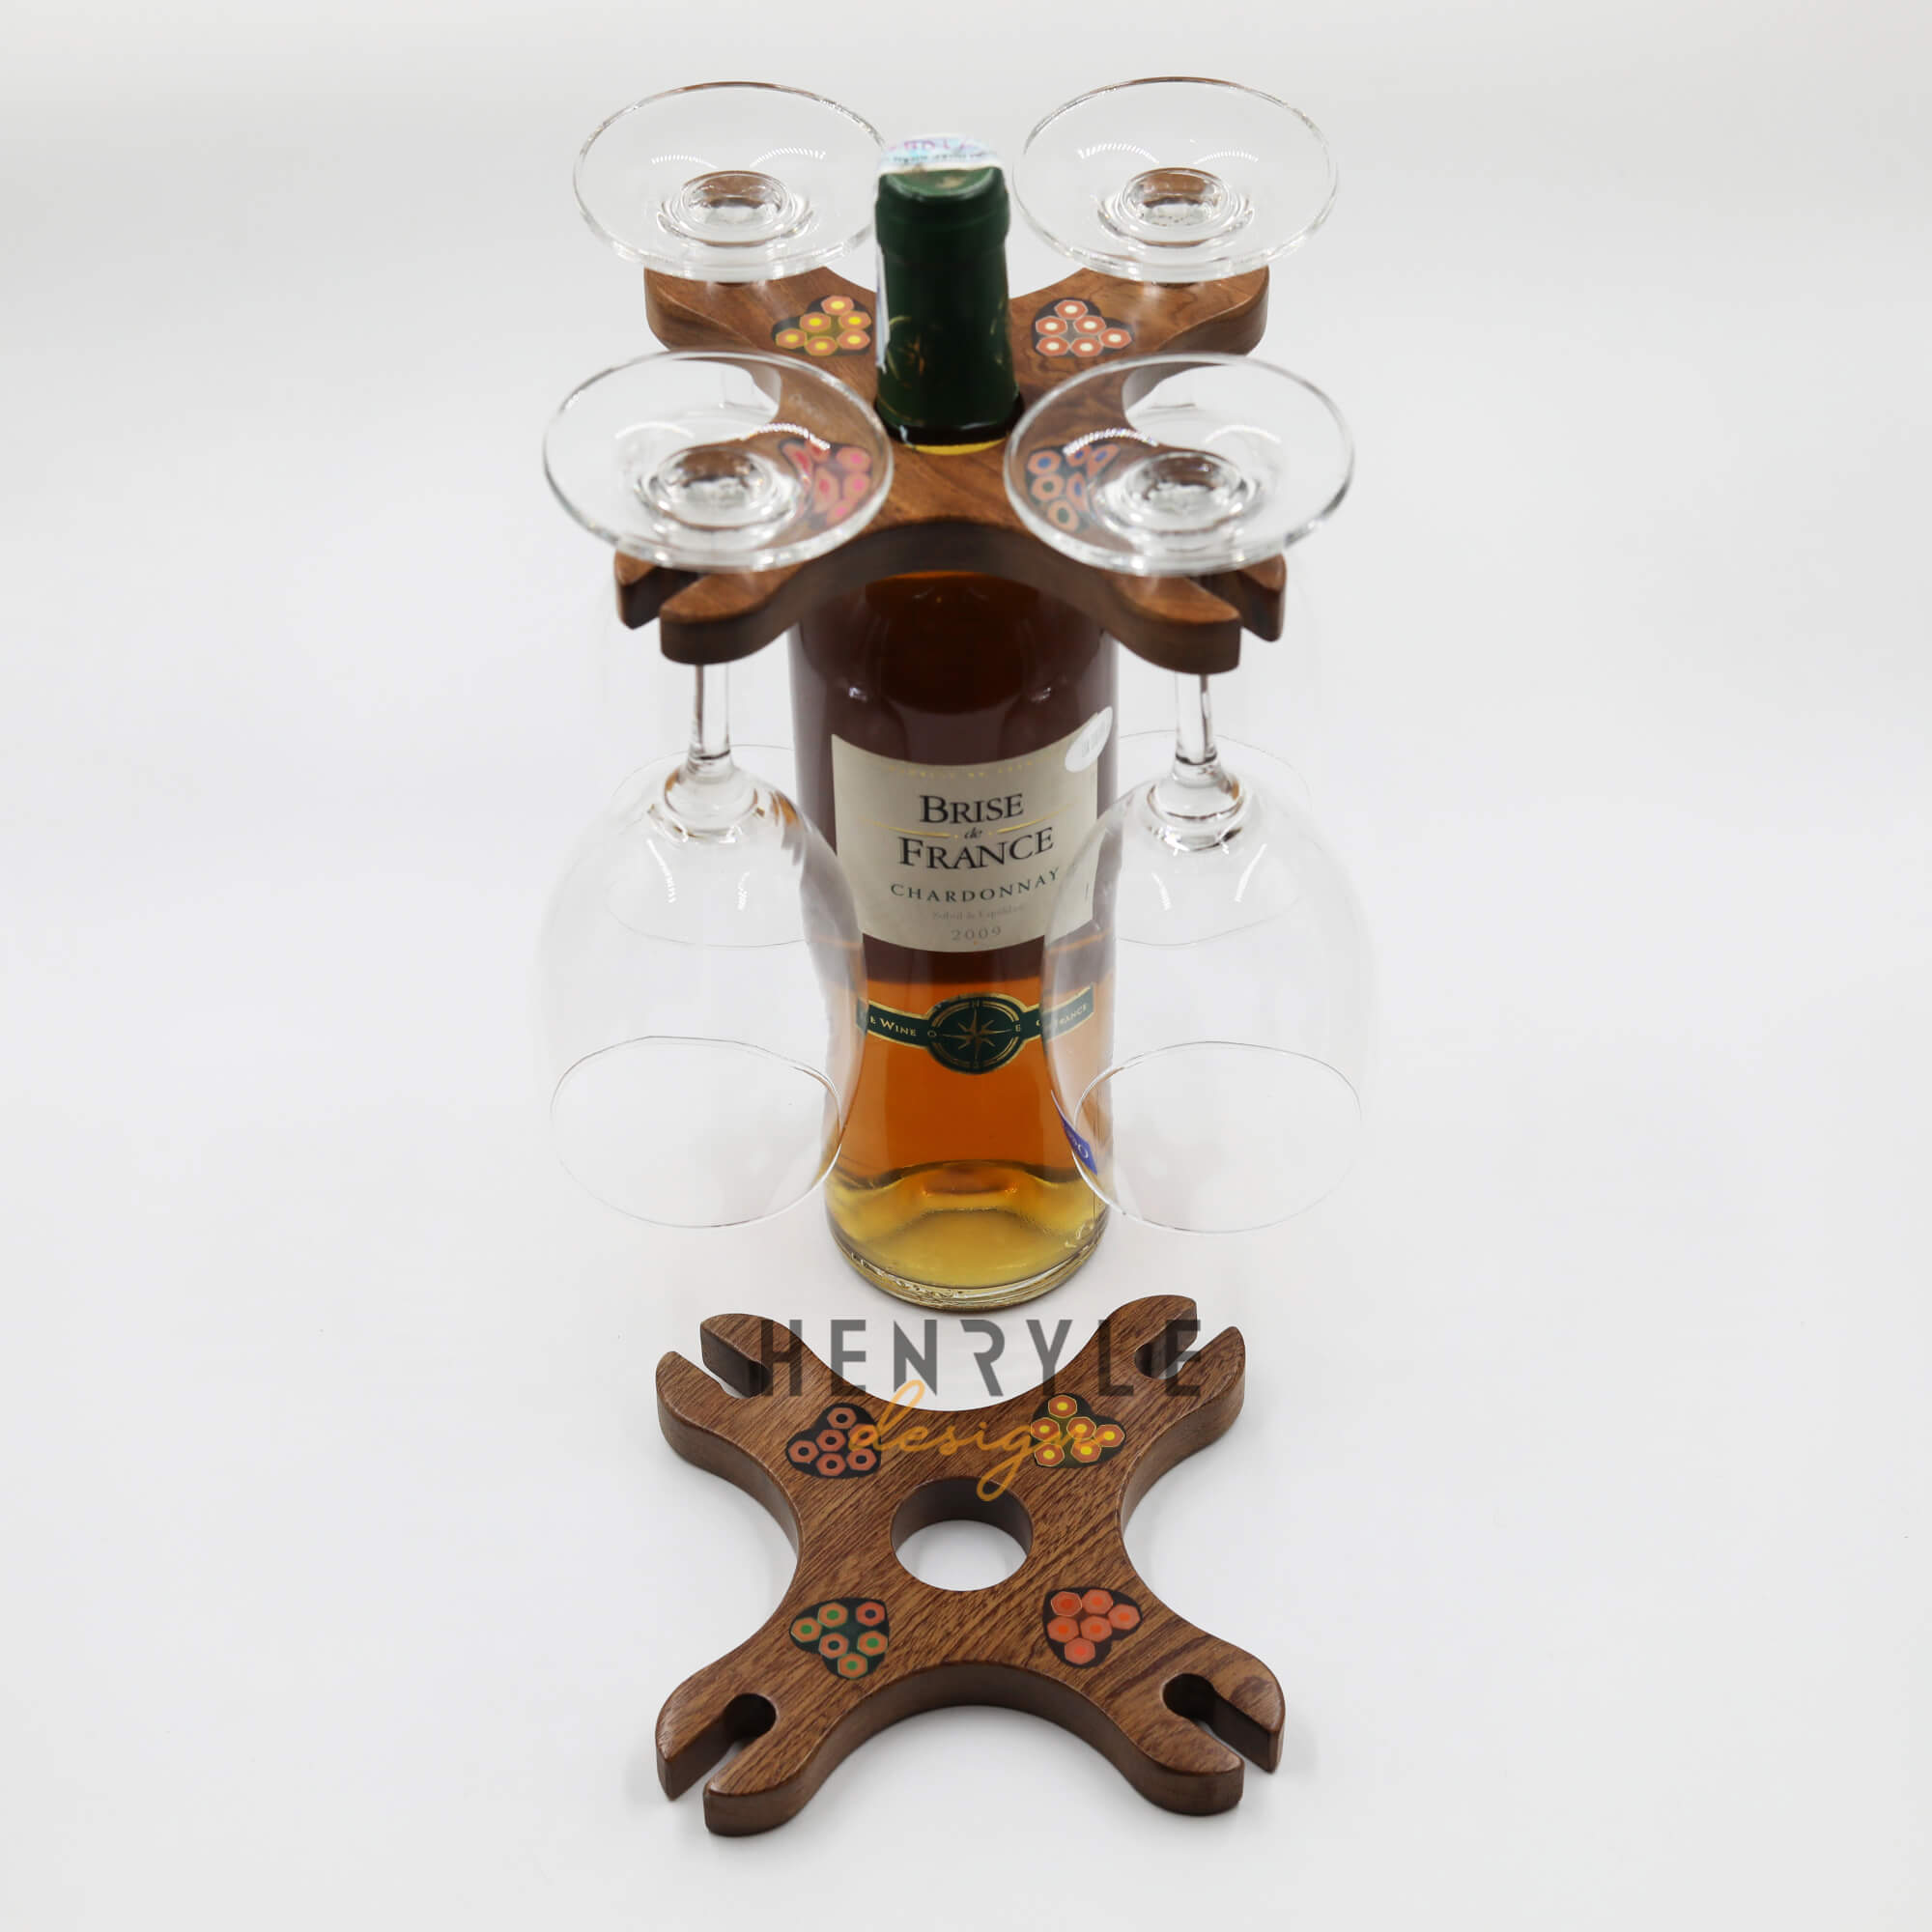 Colored Pencil Wine Bottle Holder with 4 Long Stem Glasses